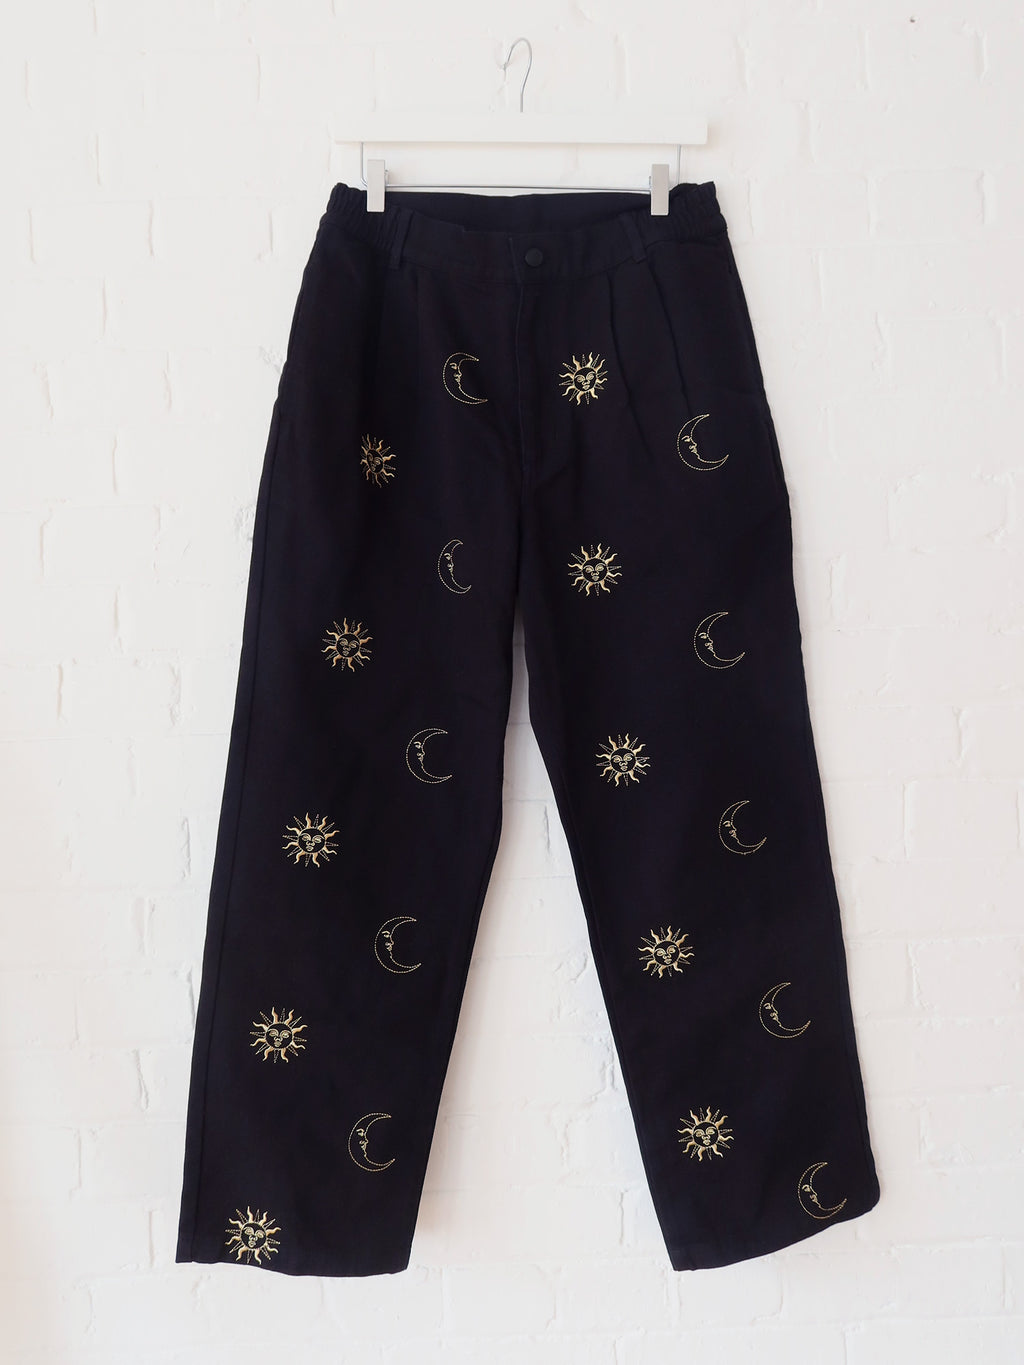 LO x Laura Callaghan Metallic Symbols Pants